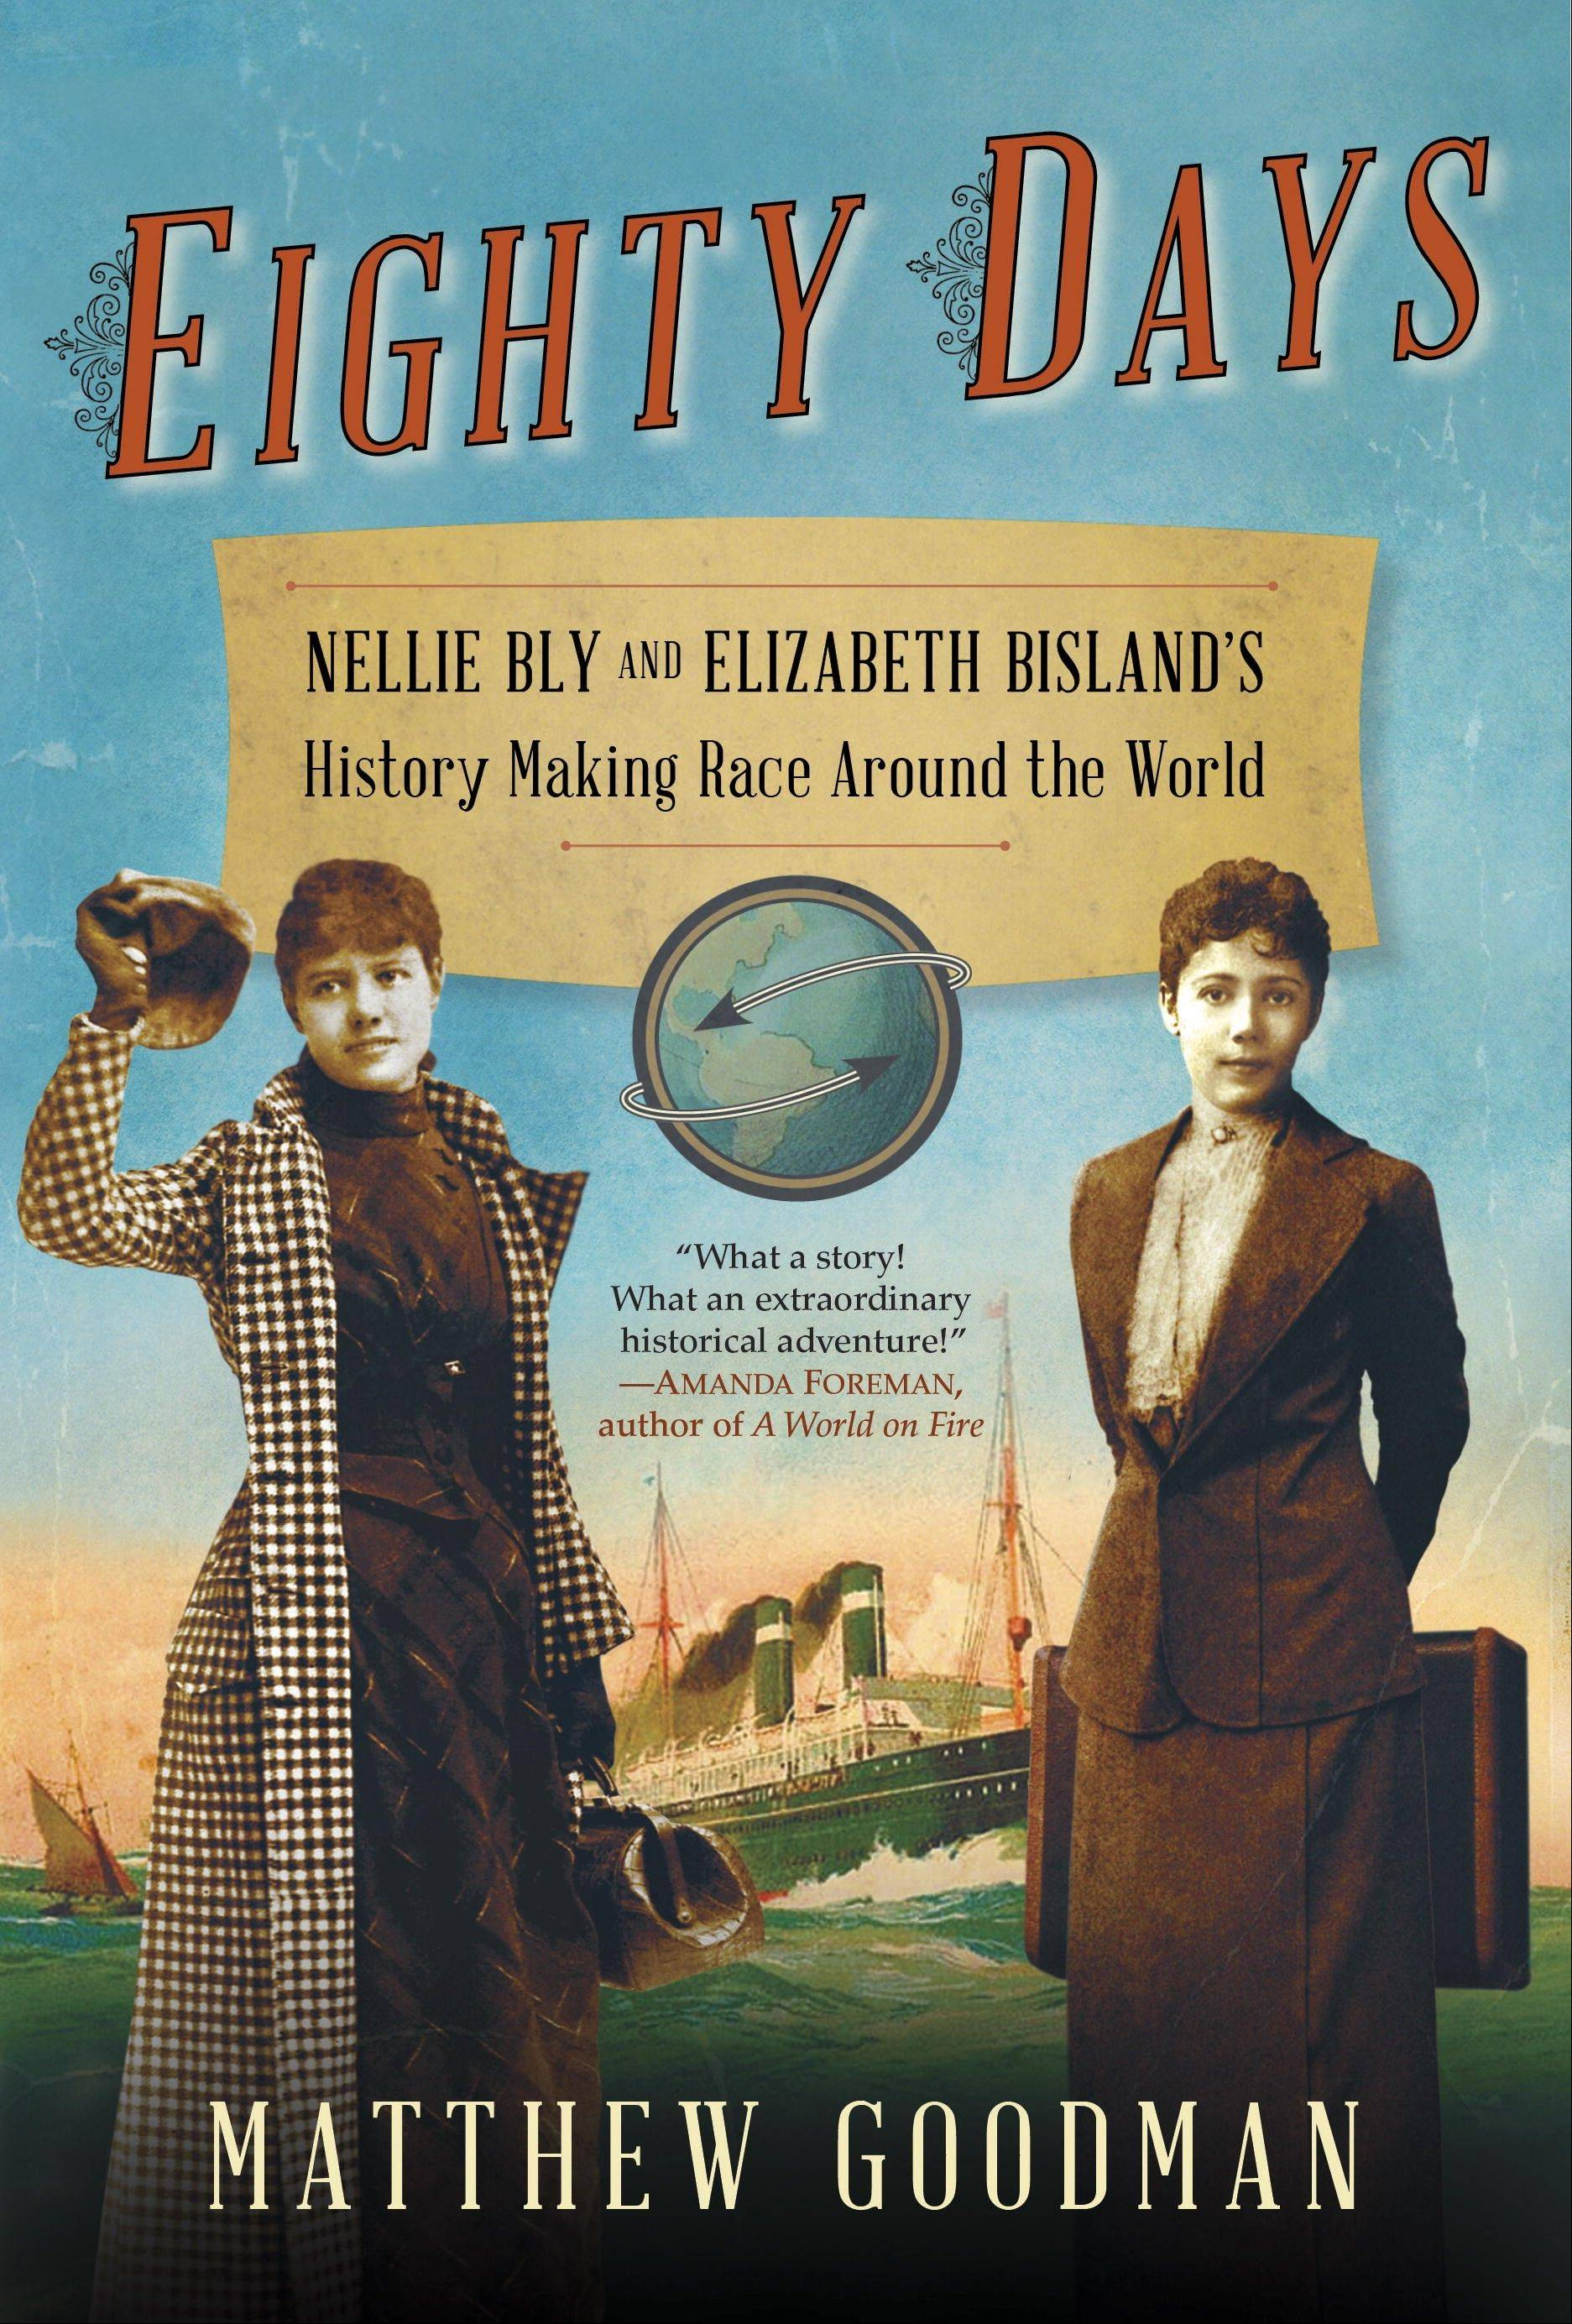 """Eighty Days: Nellie Bly and Elizabeth Bisland's History-Making Race Around the World"" by Matthew Goodman"